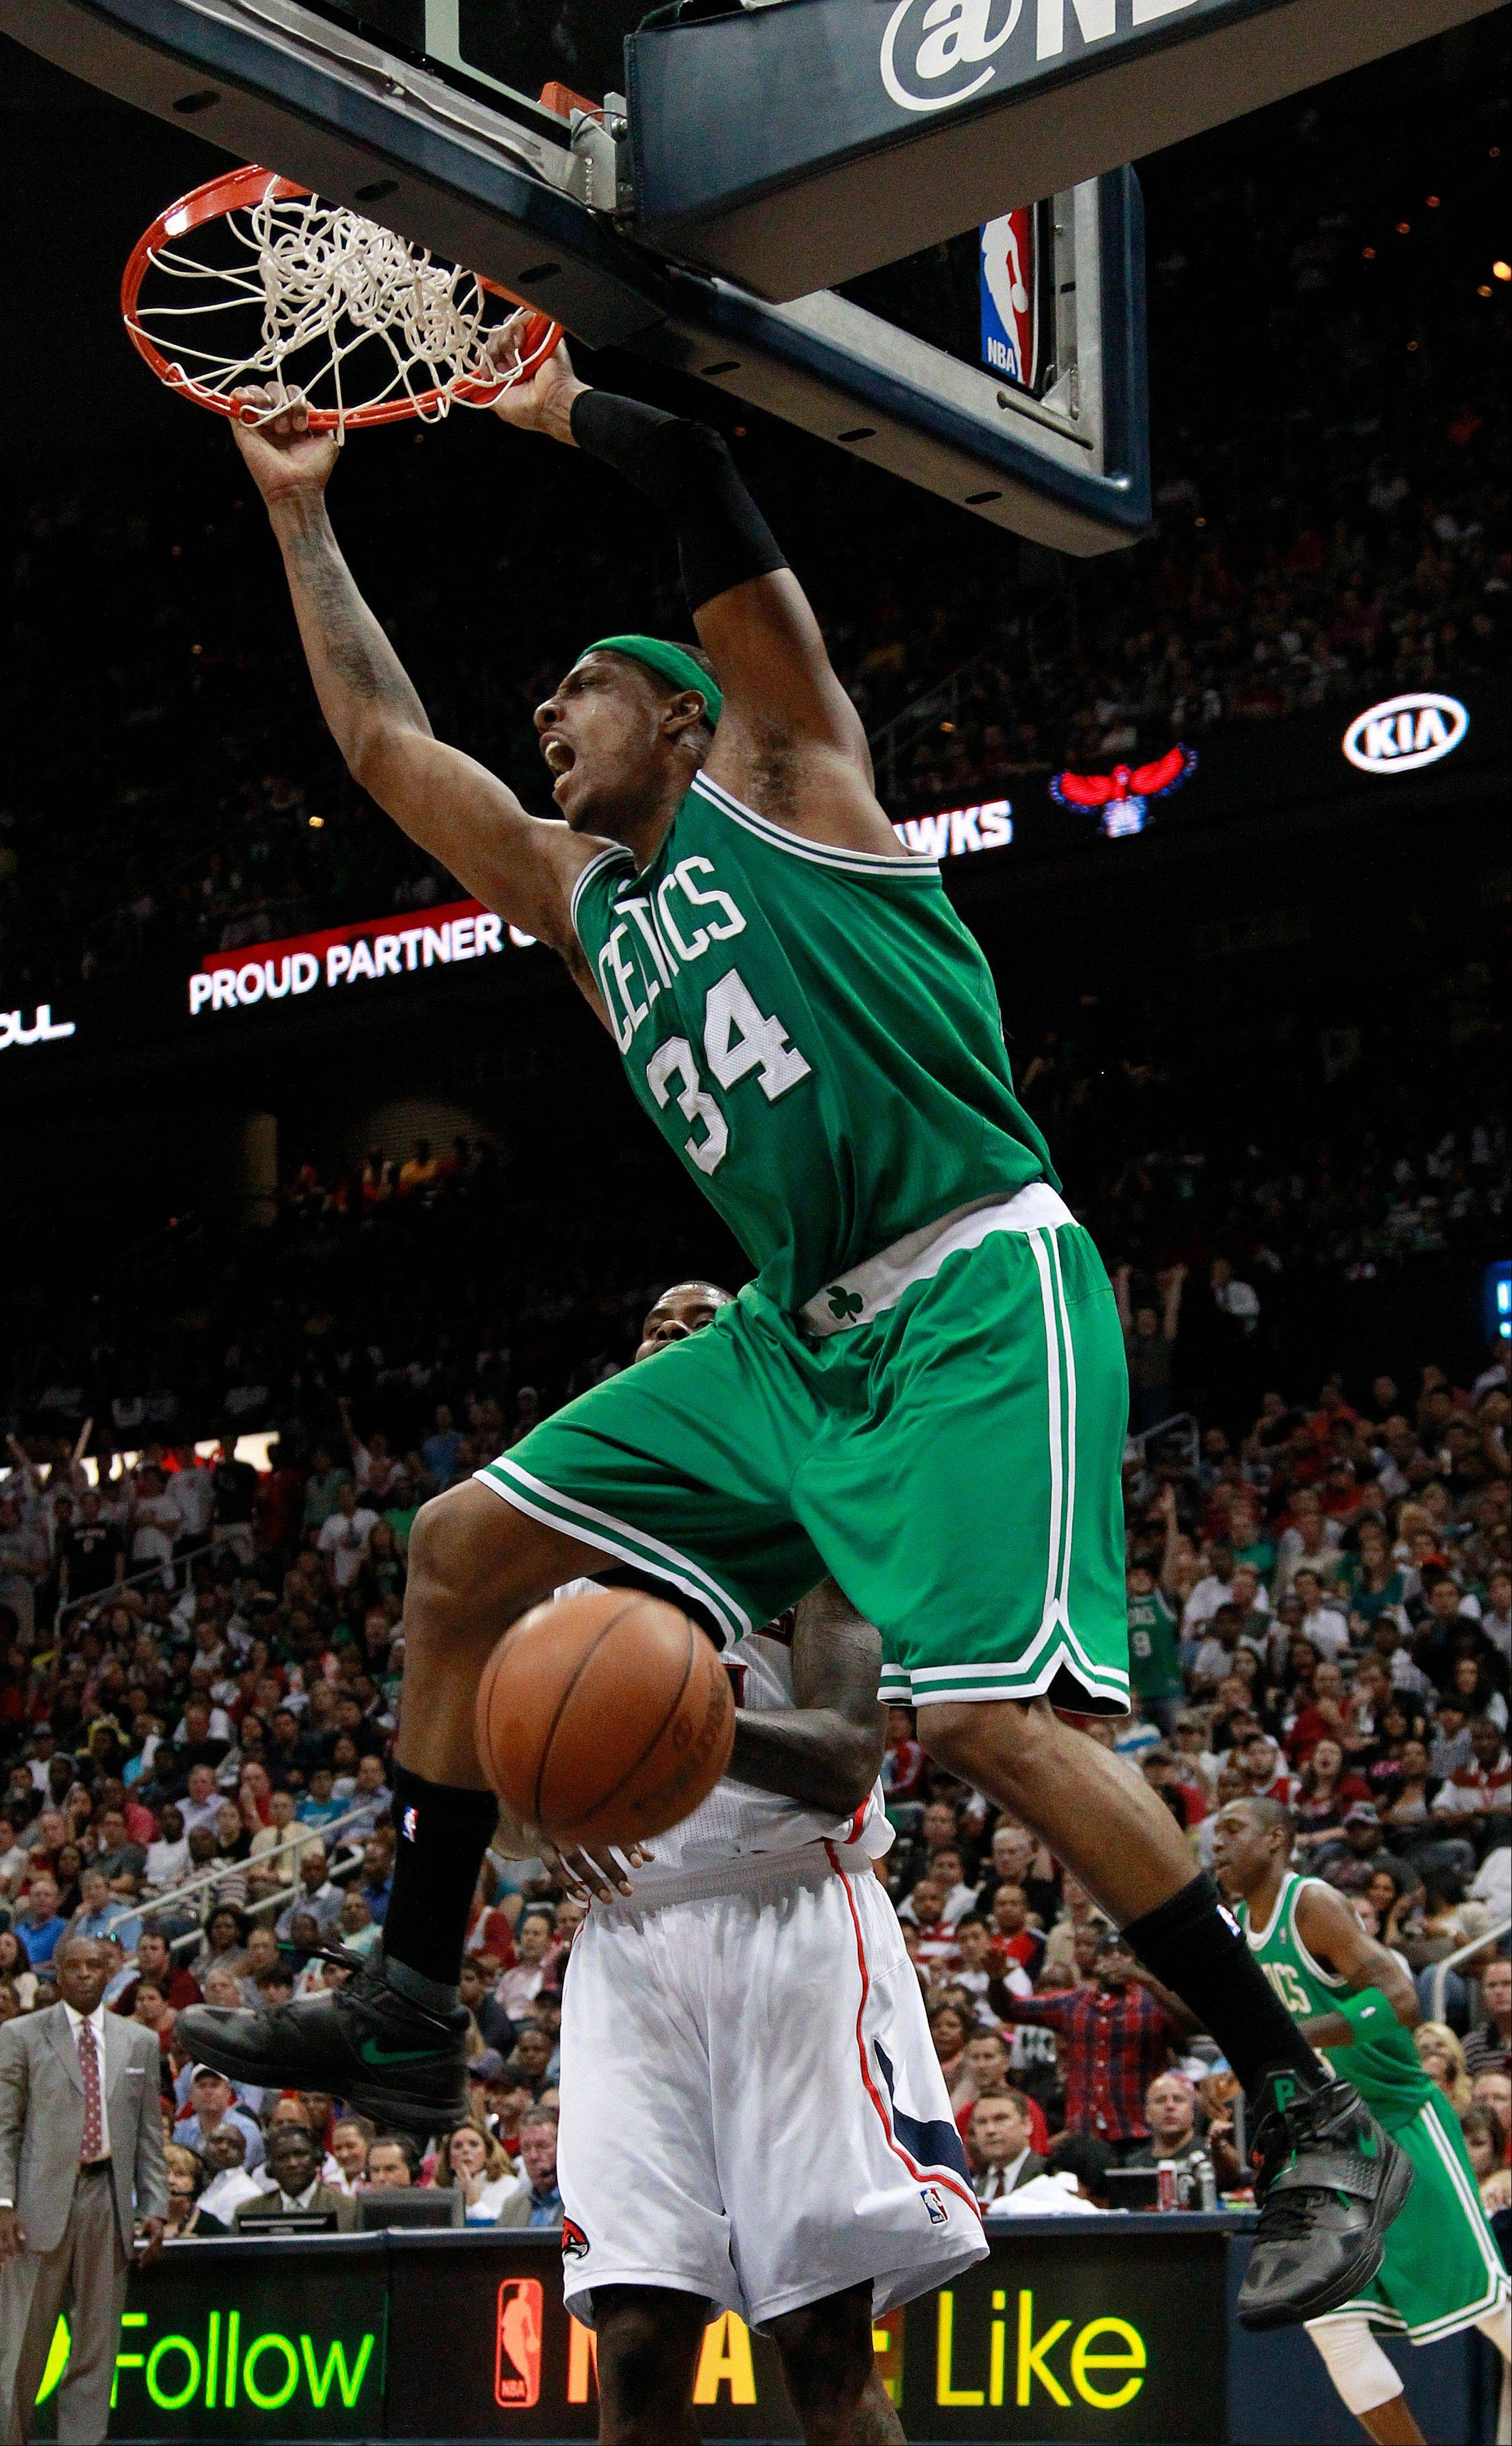 Boston Celtics forward Paul Pierce scores Tuesday in the second half of Game 2 against the Atlanta Hawks in Atlanta. Boston won 87-80 and evened the series at one game each.